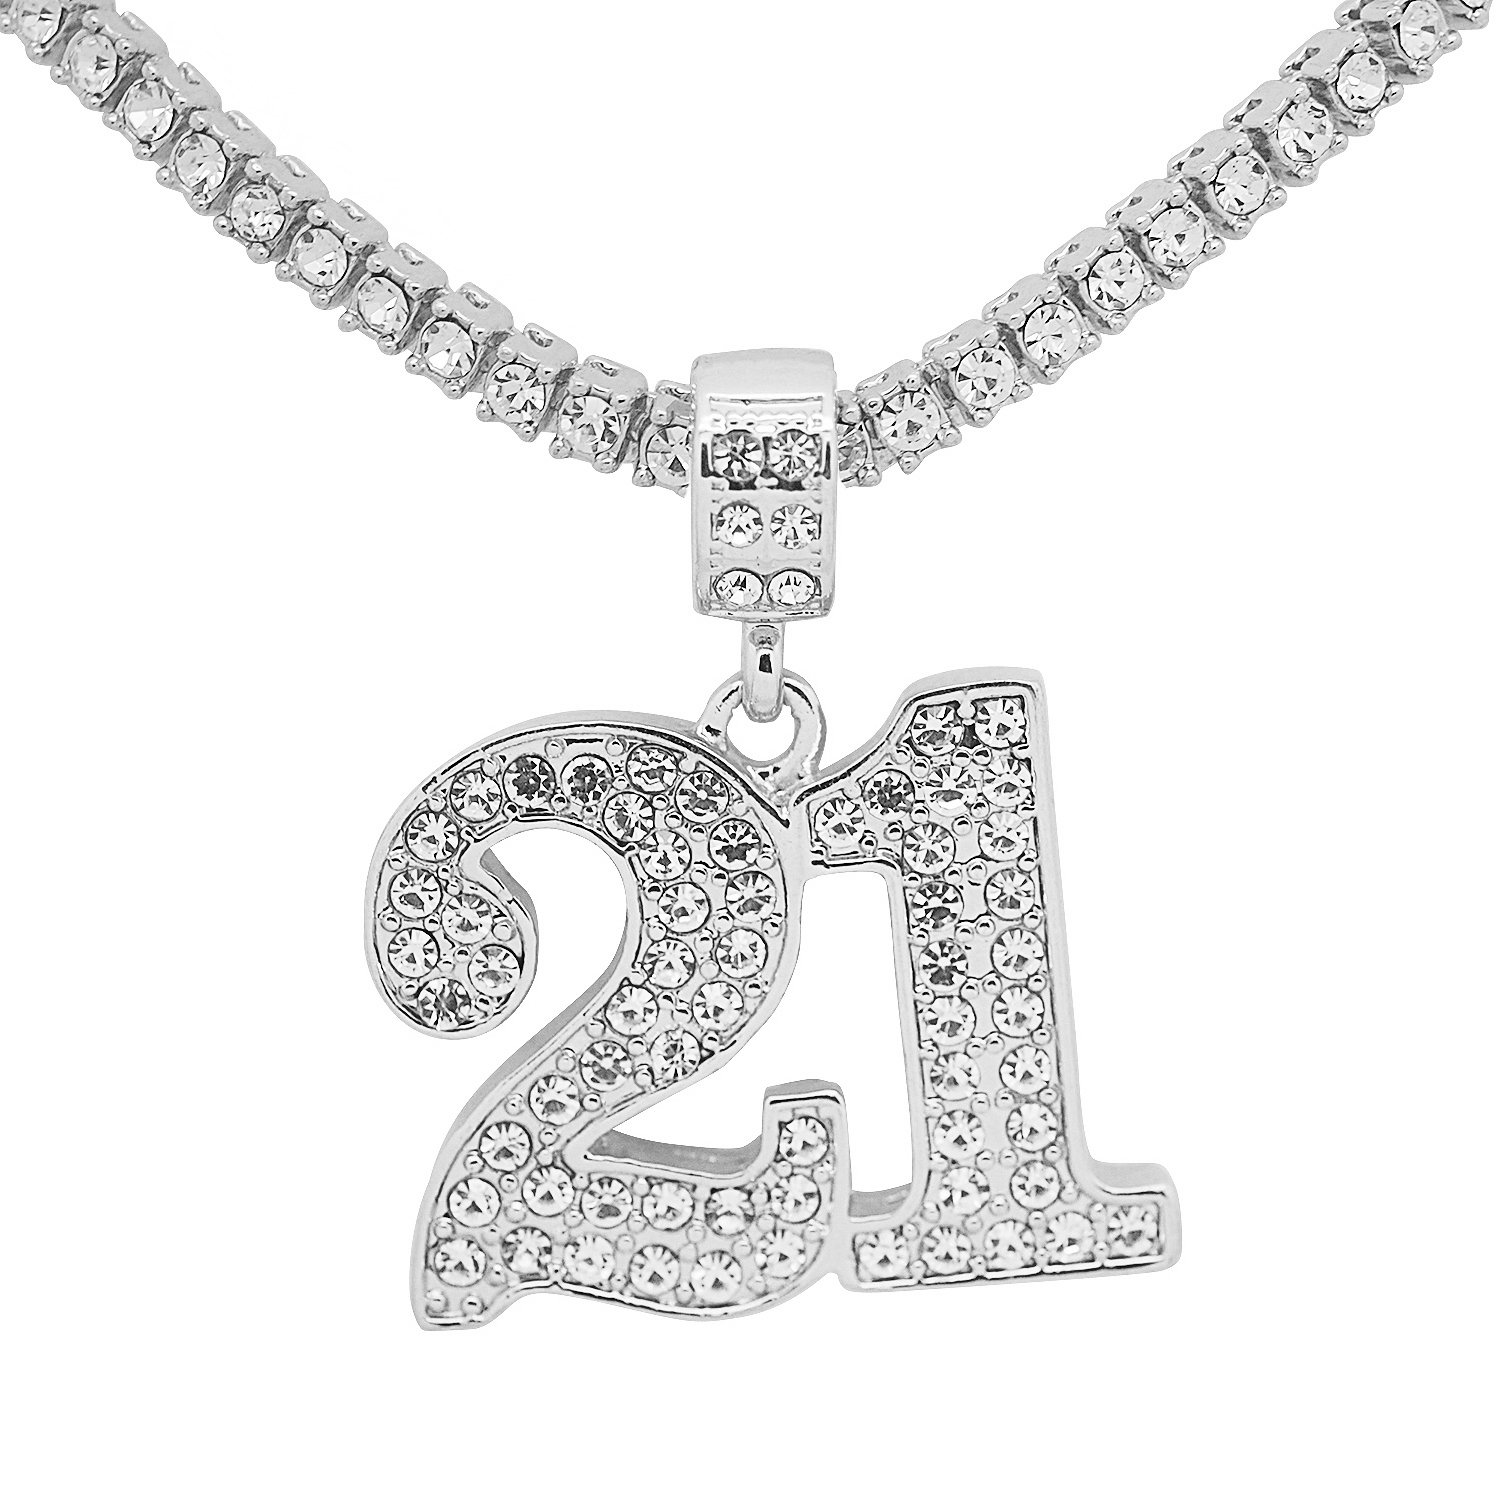 White Gold-Tone Hip Hop Bling Simulated Crystal Lucky Charm Number 21 Pendant with 16 Tennis Chain and 24 Rope Chain